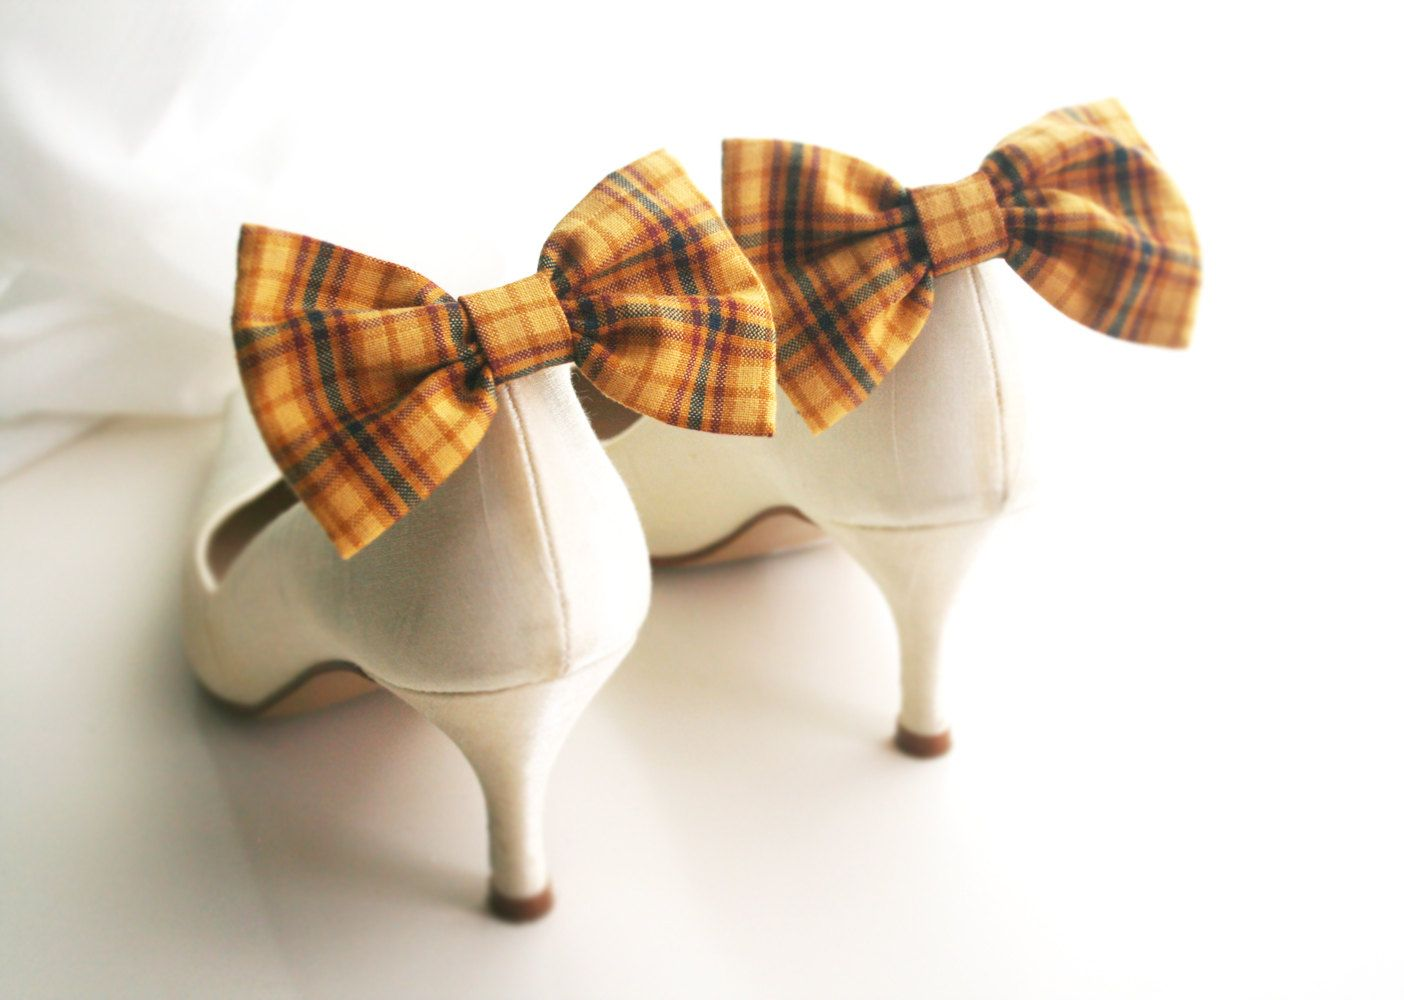 Mustard bow Shoe clips, Yellow Bow tie, Mustard scottish tartan, Bow tie clips, Prop, Photographer, Bridal red bow, Wedding bow tie. $10.00, via Etsy.